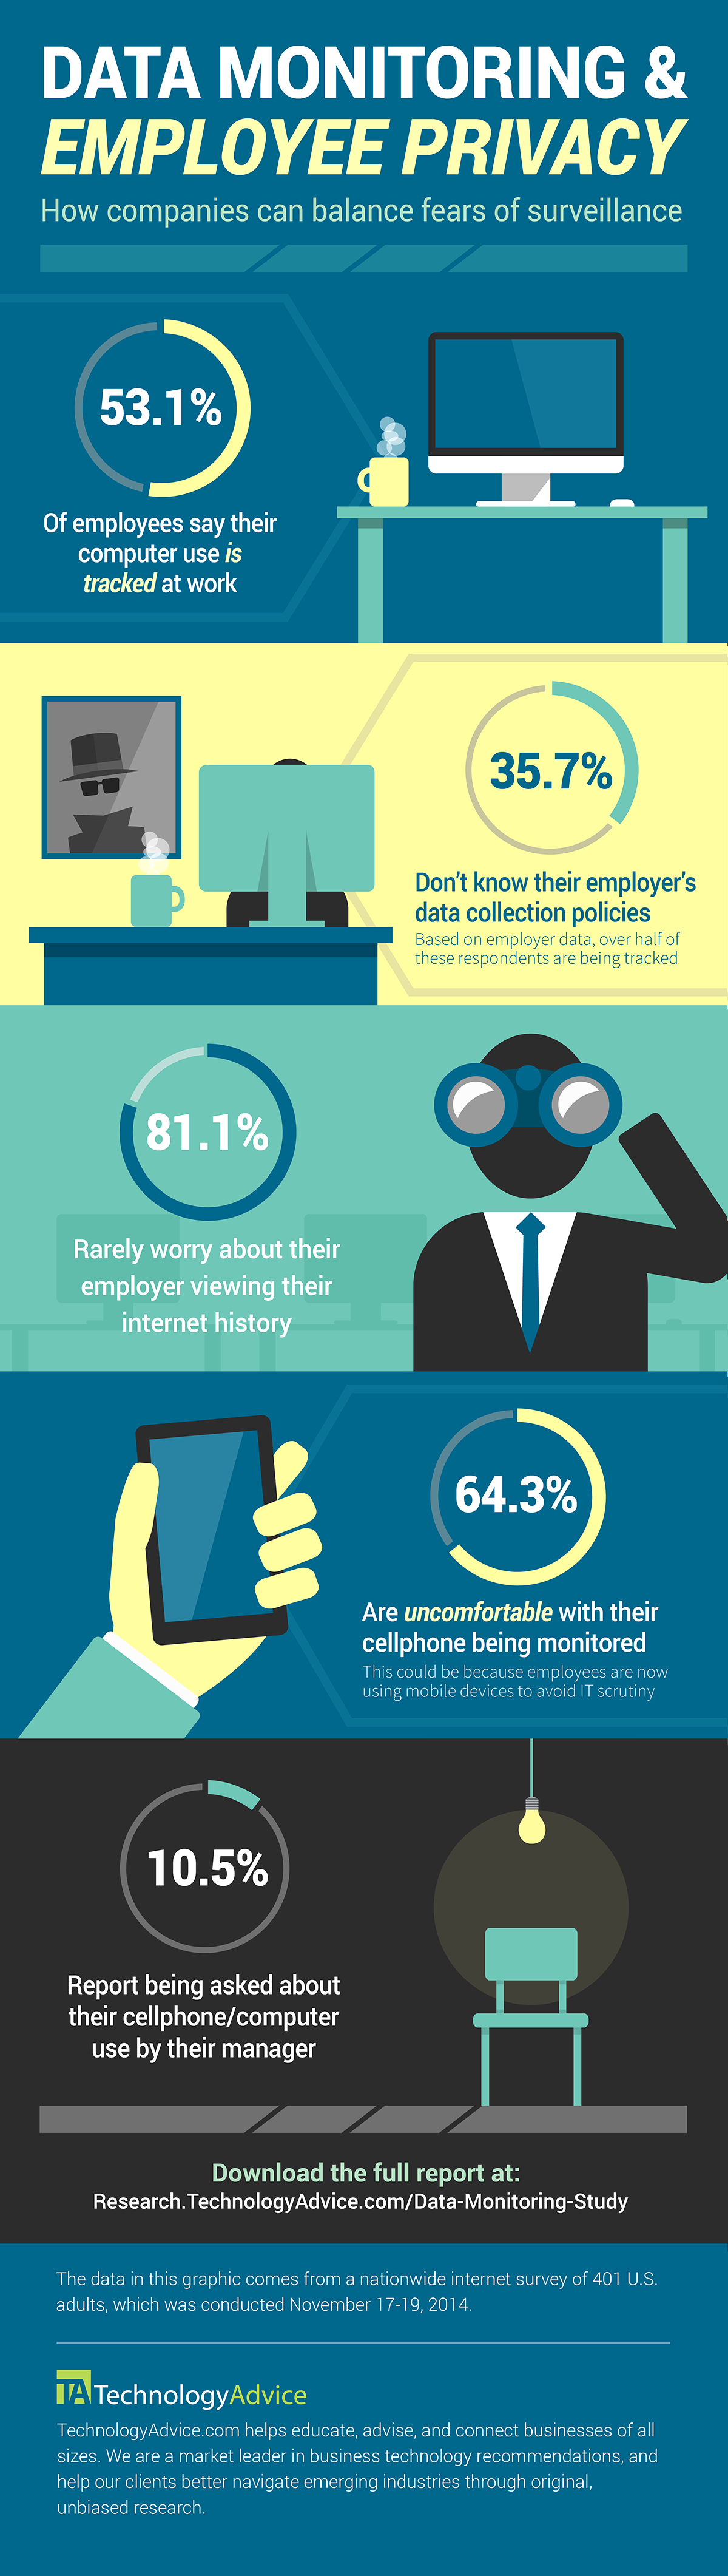 data monitoring and employee privacy infographic